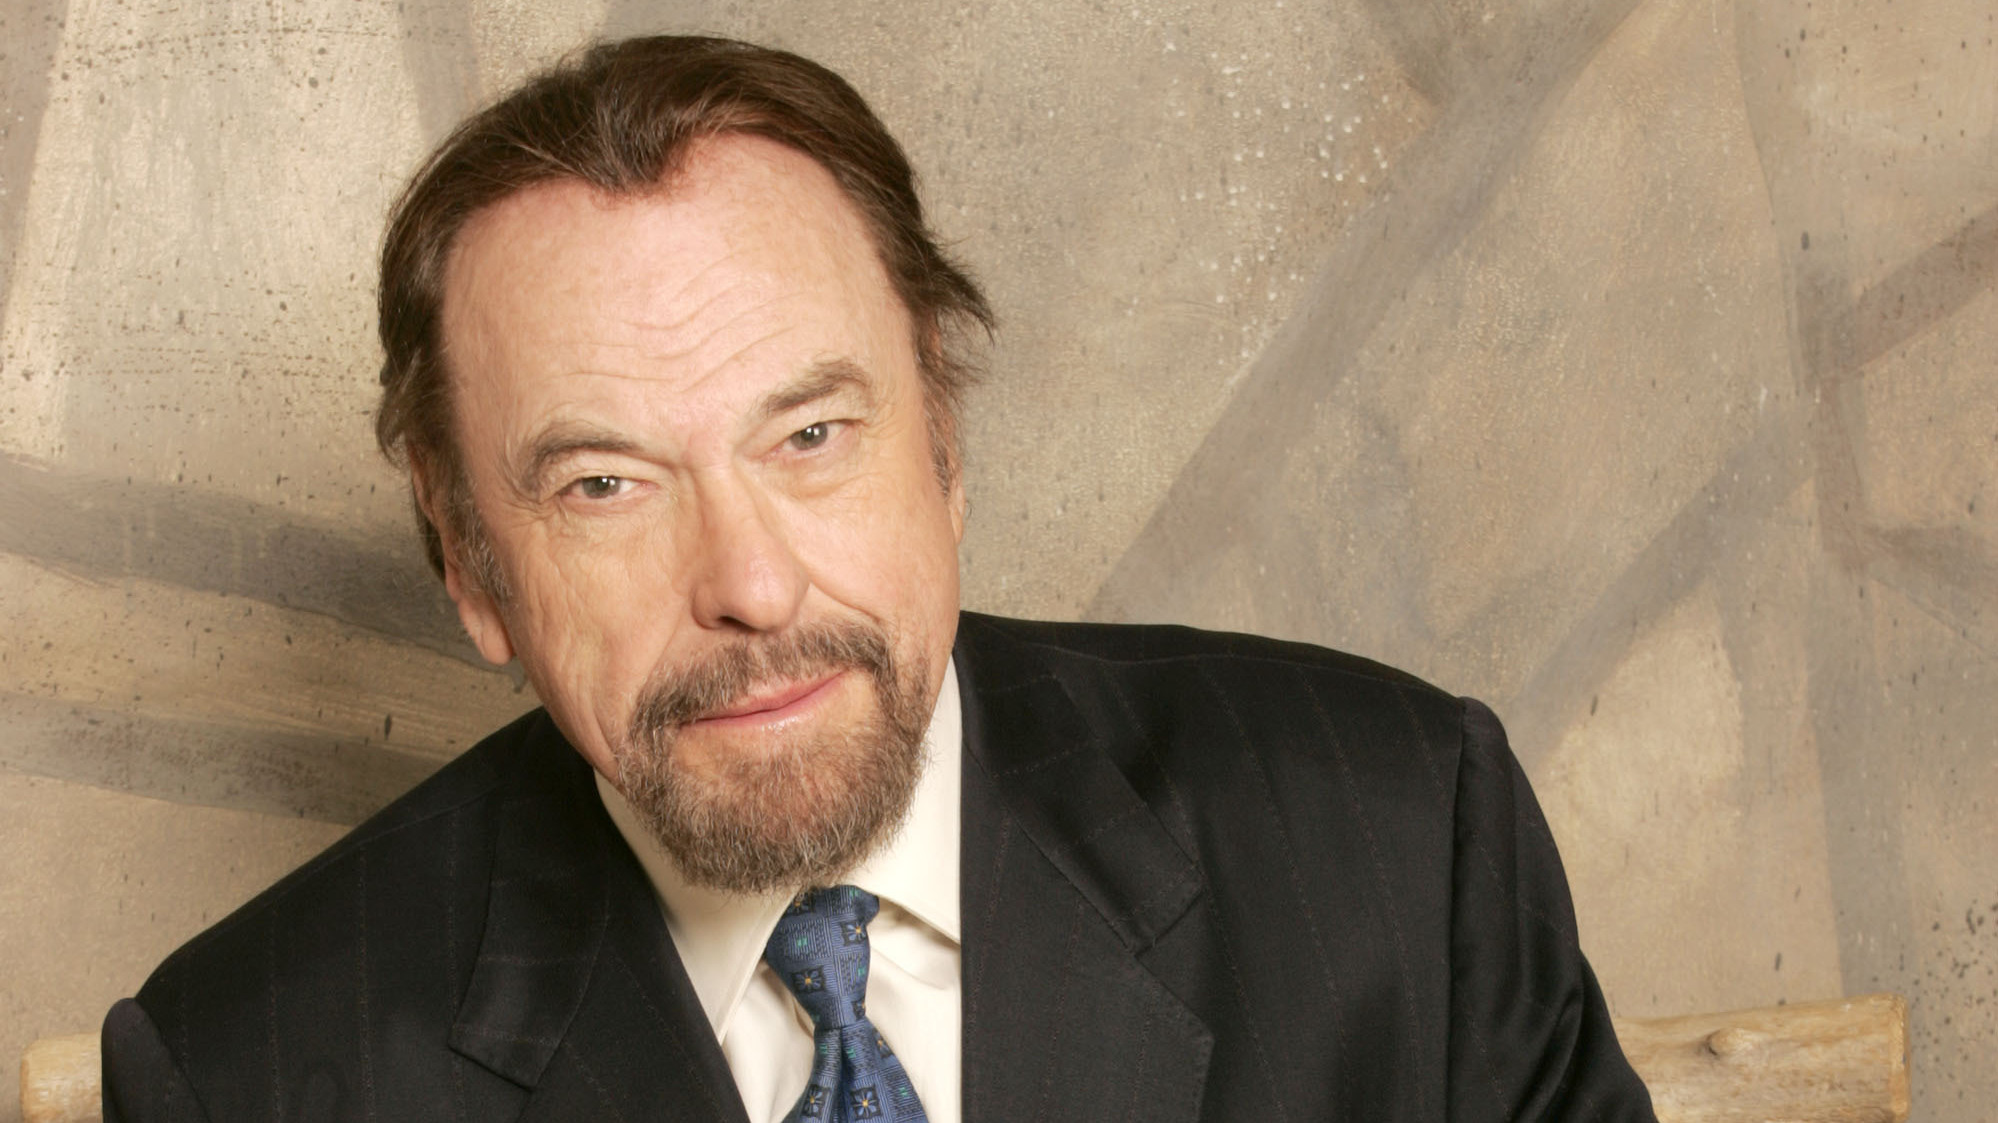 Rip Torn during the 2005 Sundance Film Festival. On Tuesday, Torn died at age 88.